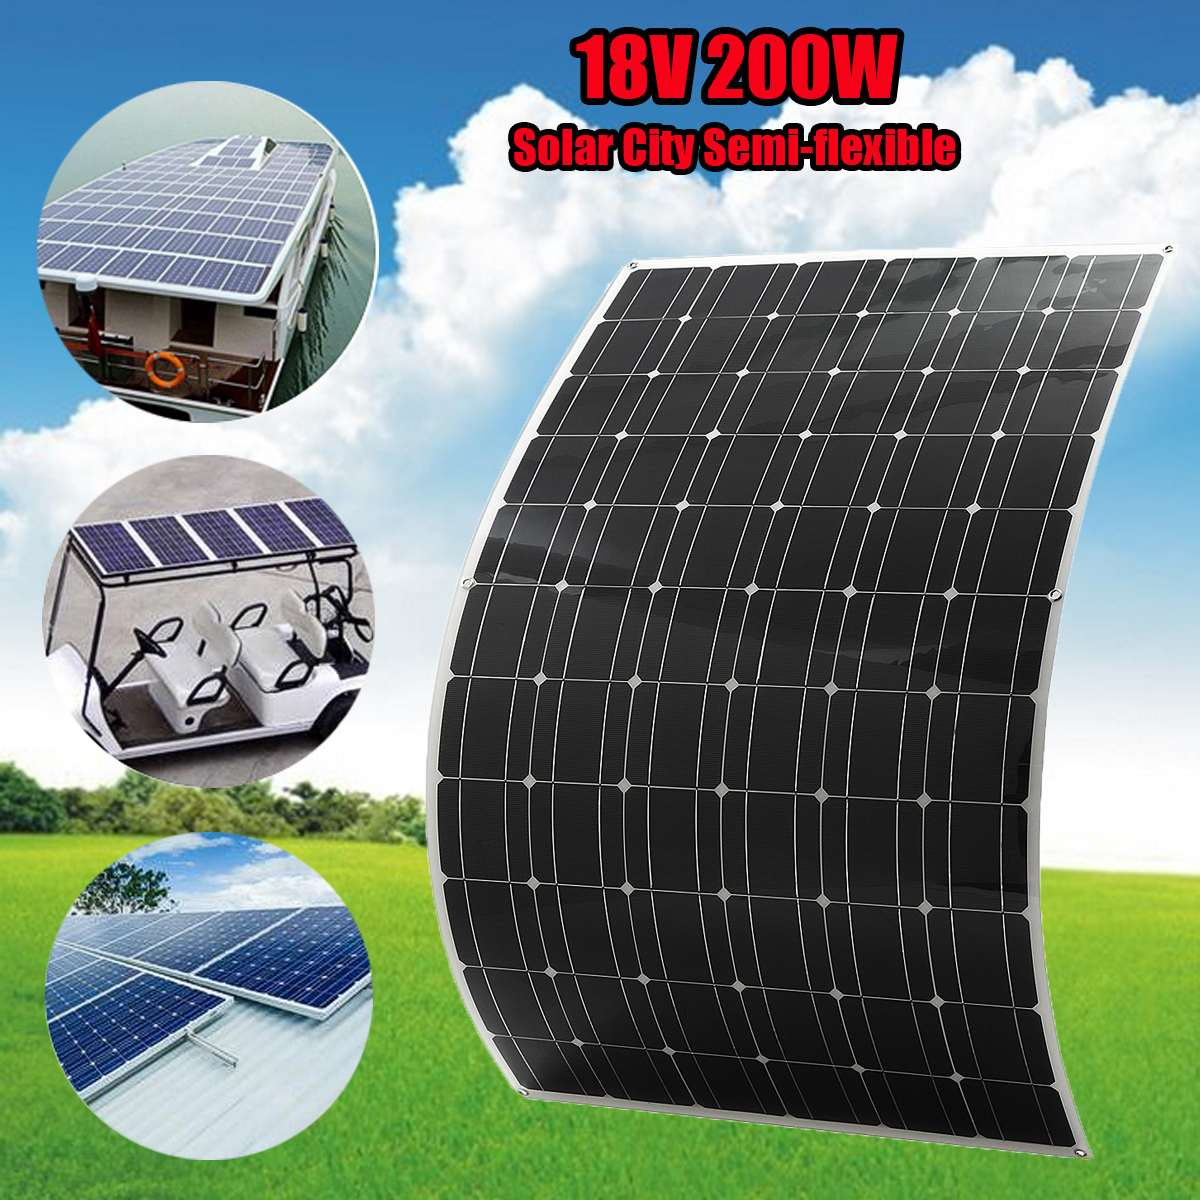 EL-10 200W 12V Semi Flexible Monocrystalline Solar Panel Waterproof High Conversion Efficiency Solar Panel + 1.5m Cable 50w 12v semi flexible monocrystalline silicon solar panel solar battery power generater for battery rv car boat aircraft tourism